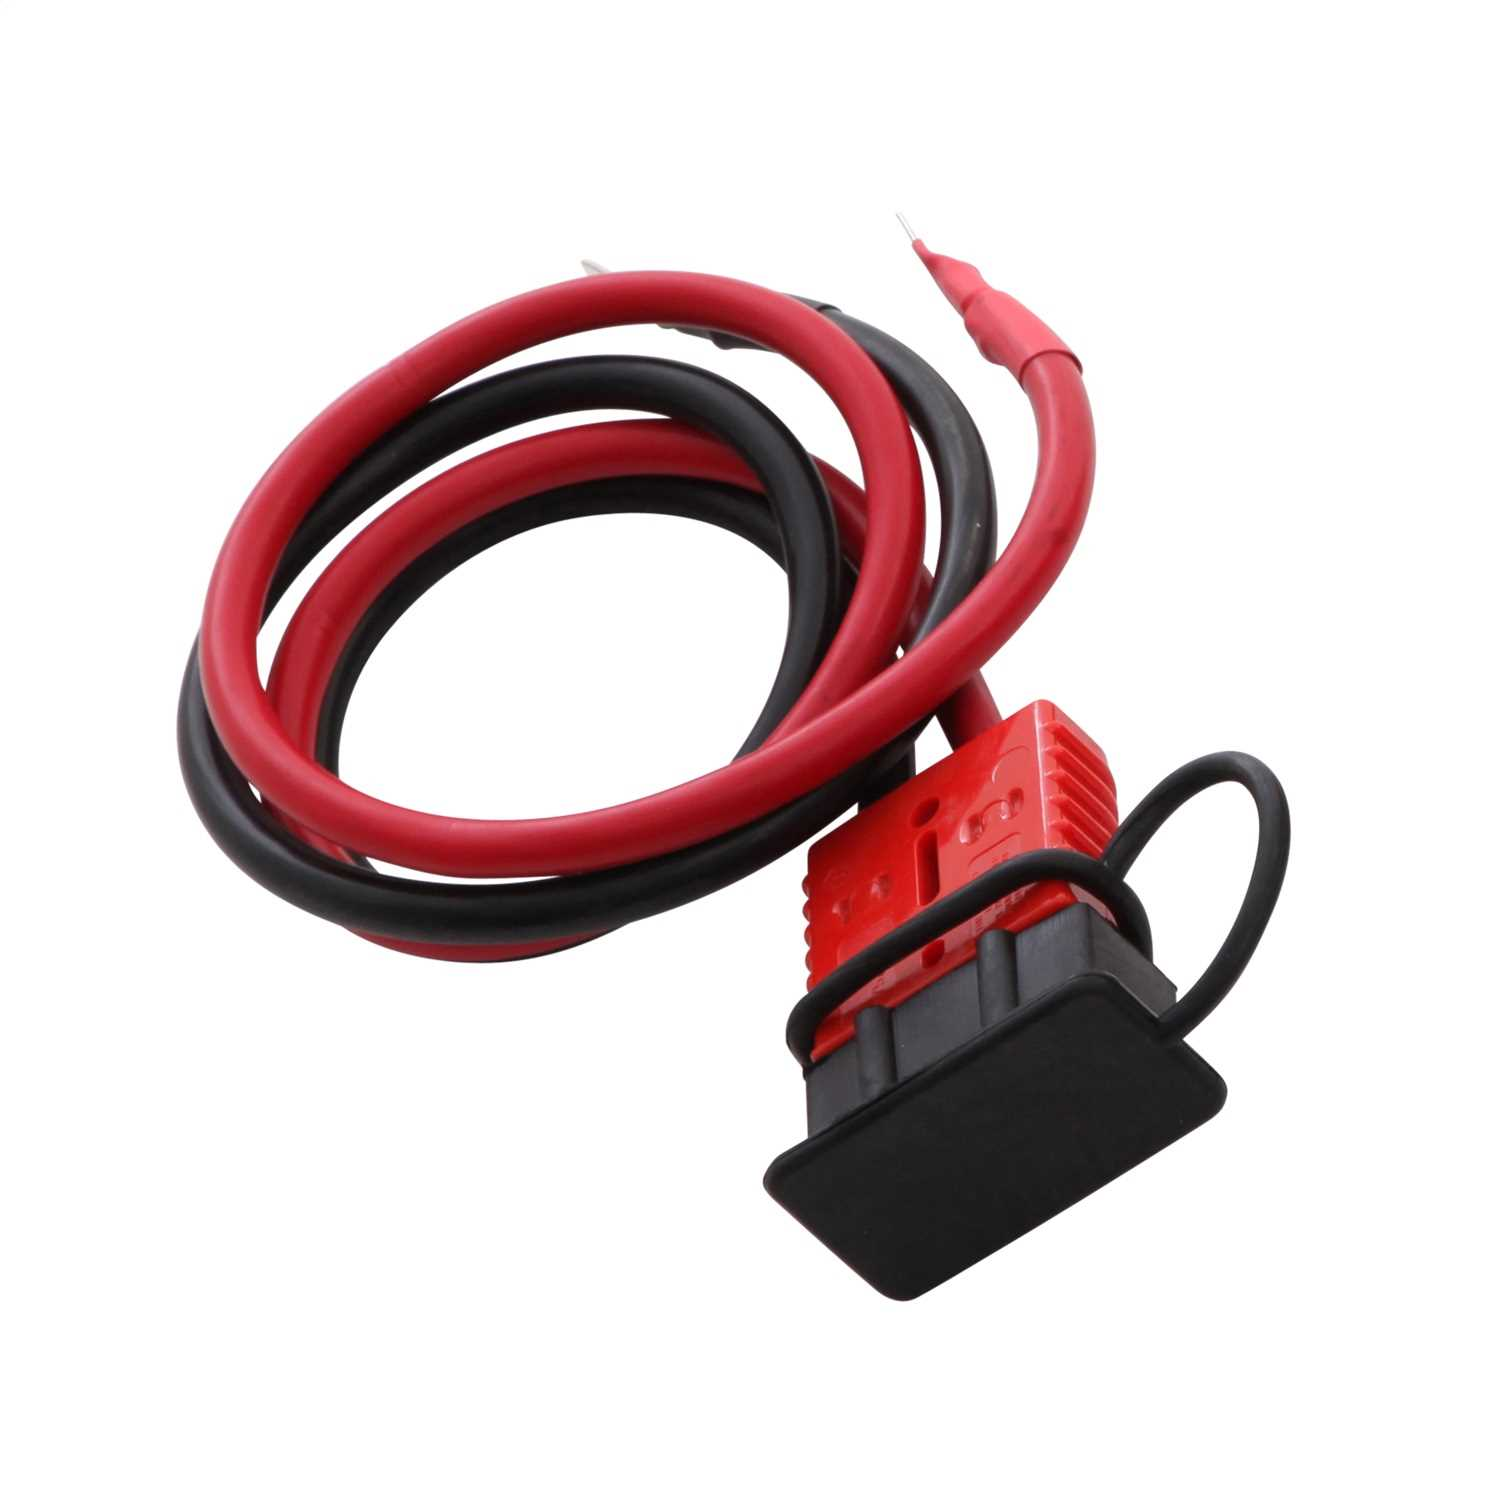 Winch Wire Harness Custom Camper Automotive Engine Wiring Wires Vehicle Fitment View Guide